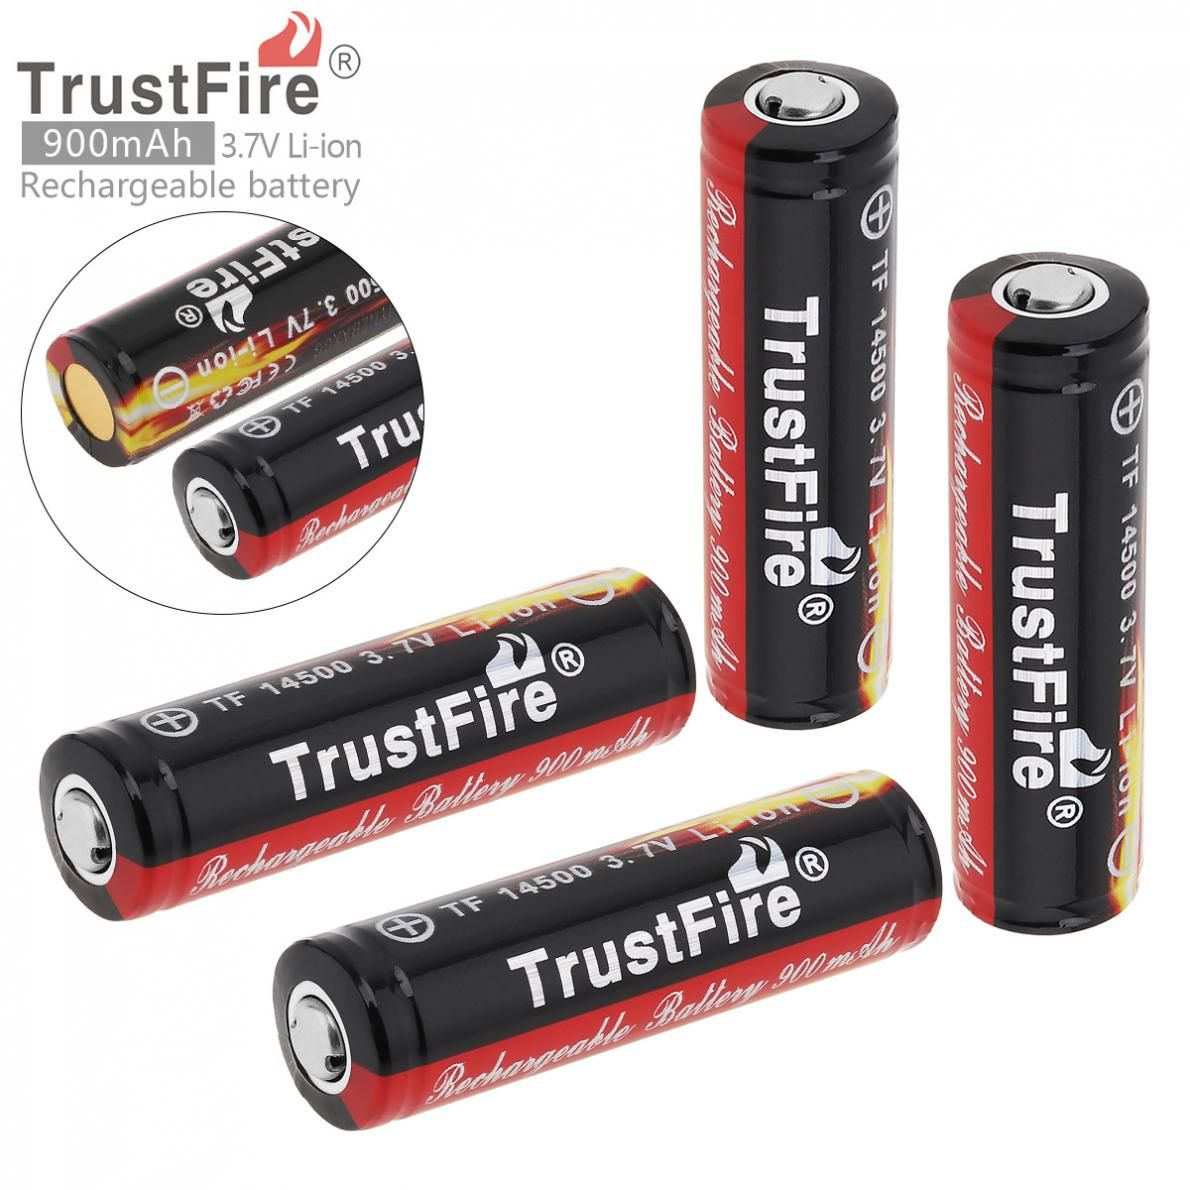 4 PiecesTrstFire 14500 Battery <font><b>3.7V</b></font> ICR14500 900Mah Li-ion 14500 Rechargeable Battery Batteries with PCB Protected Board